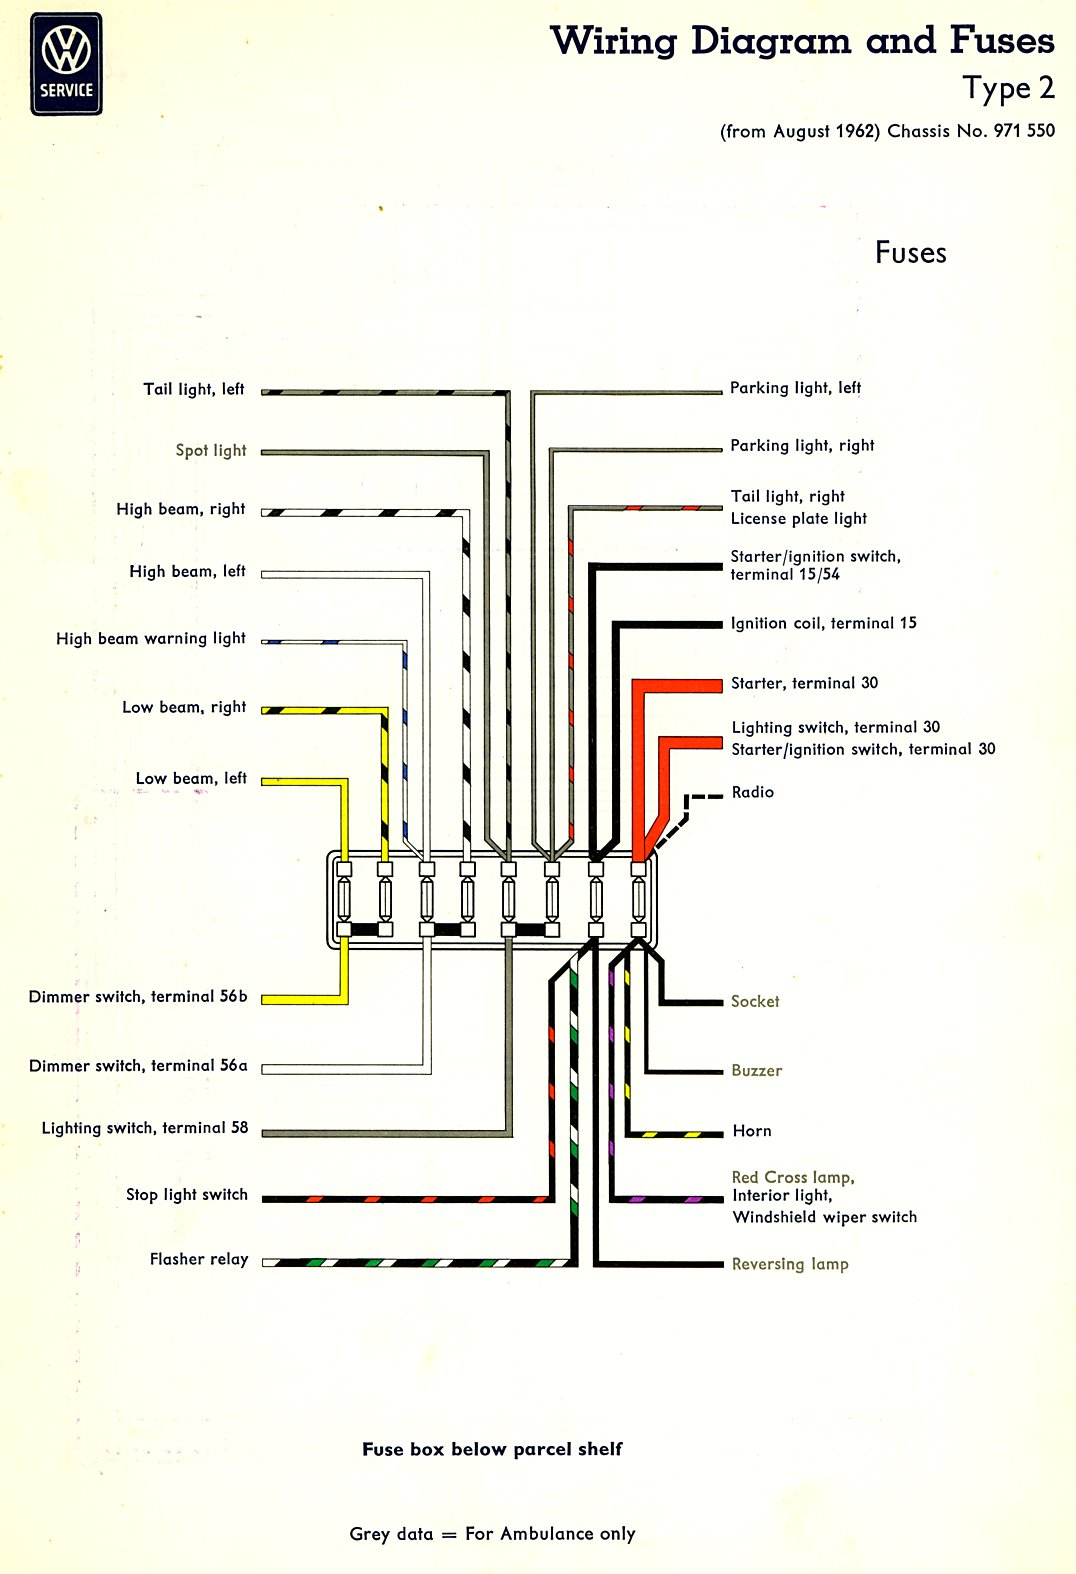 1966 Nova Fuse Box Auto Electrical Wiring Diagram Chrysler Sebring What Do I Check For The O2 Sensors On Thesamba Com Type 2 Diagrams